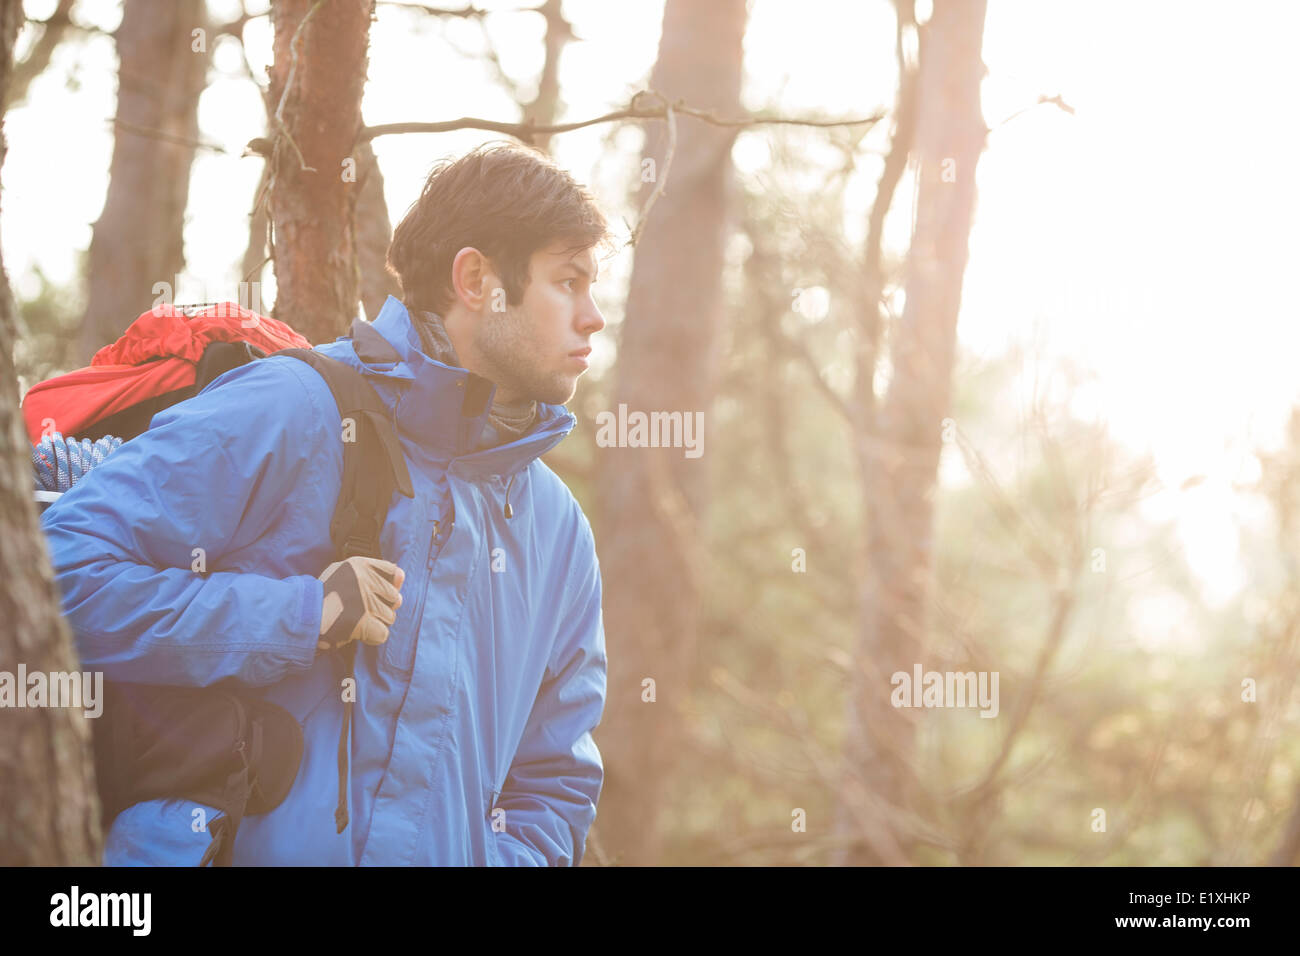 Make hiker carrying backpack in forest - Stock Image